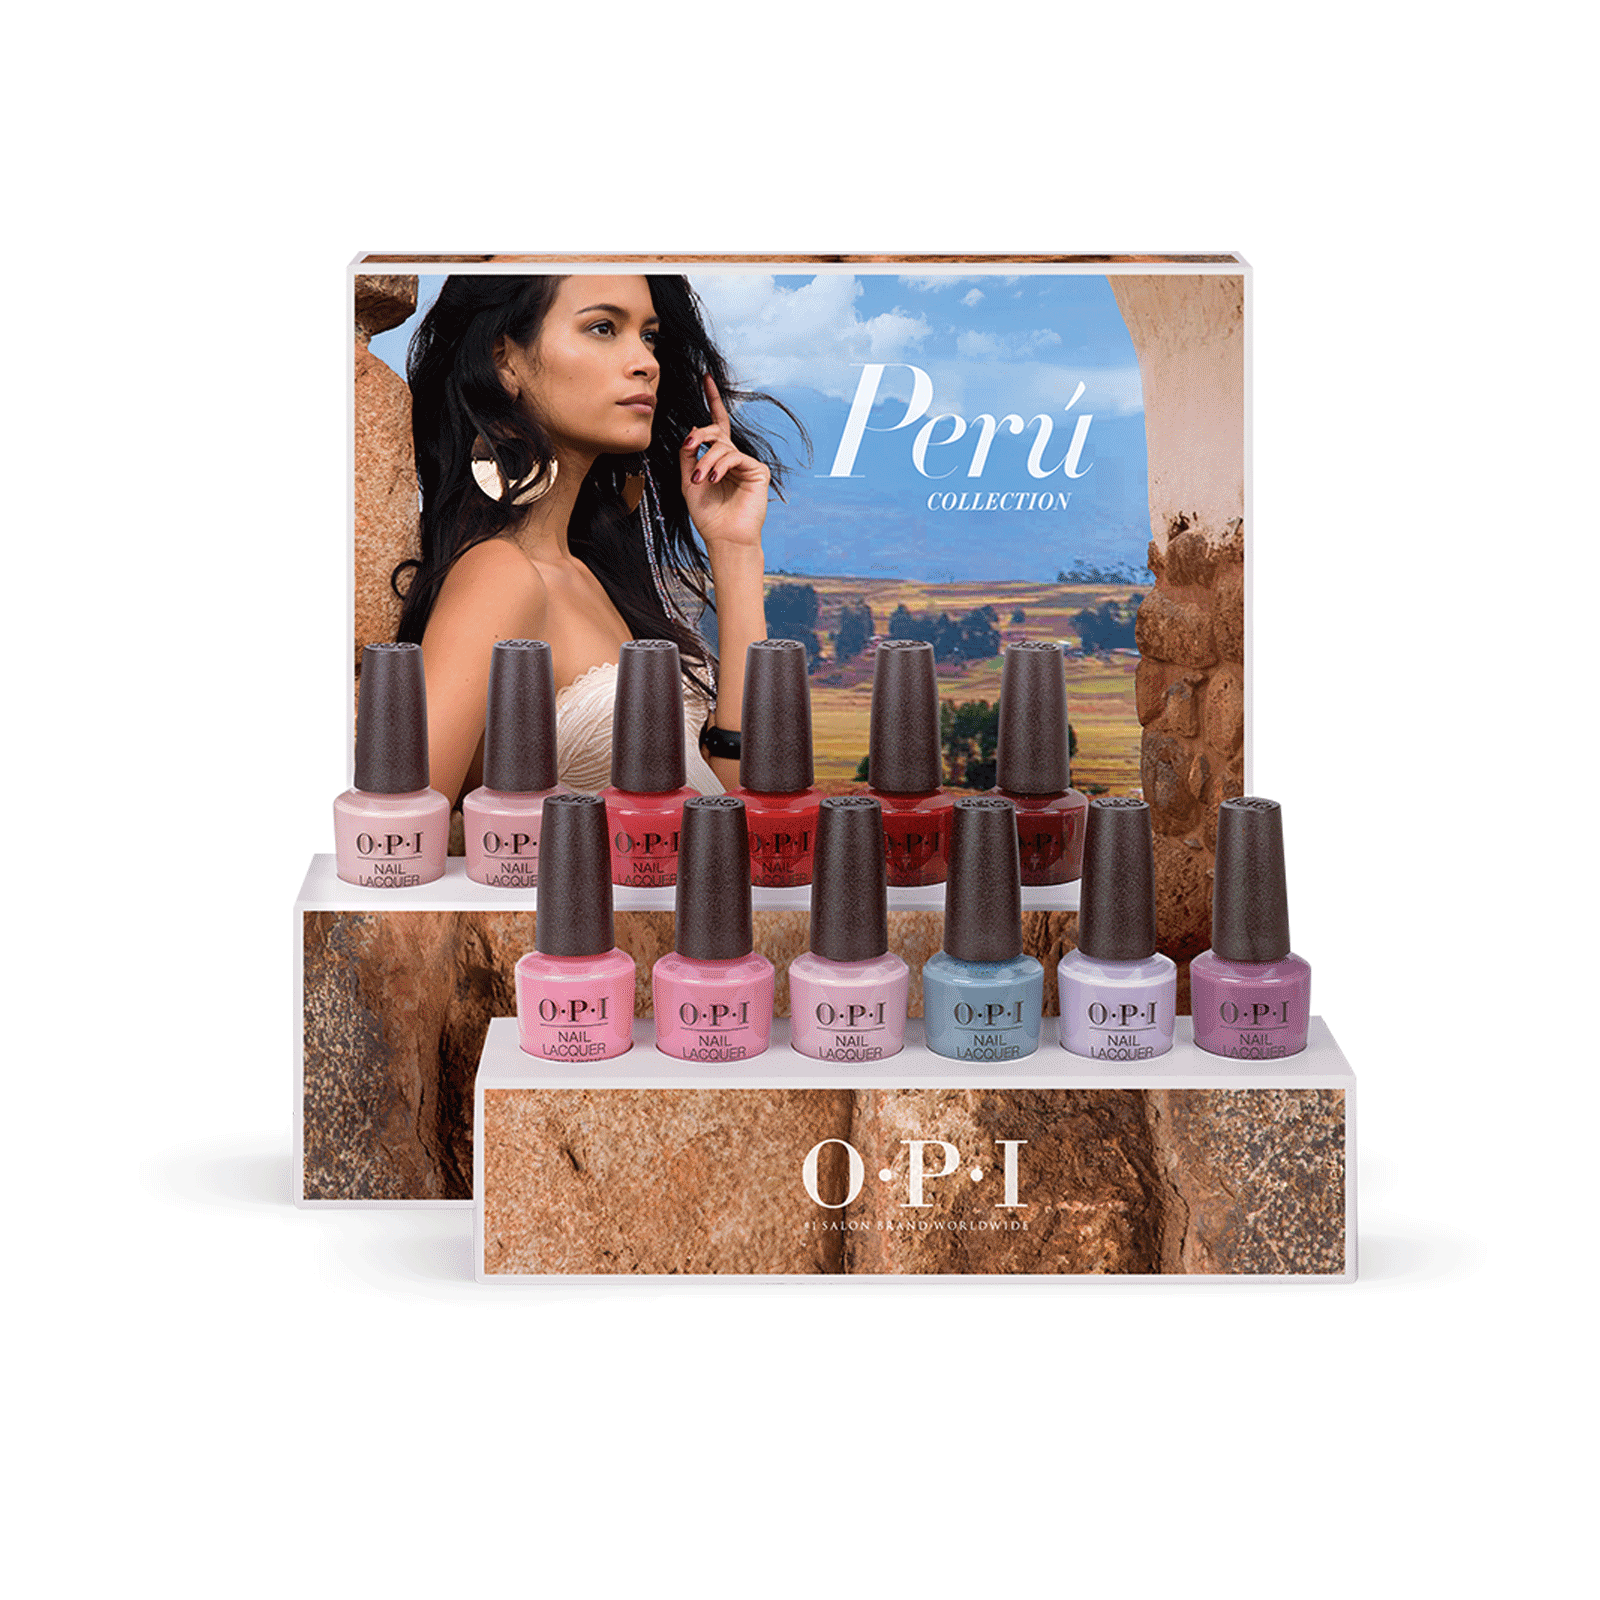 Peru Collection Nail Lacquer 12 Count Display